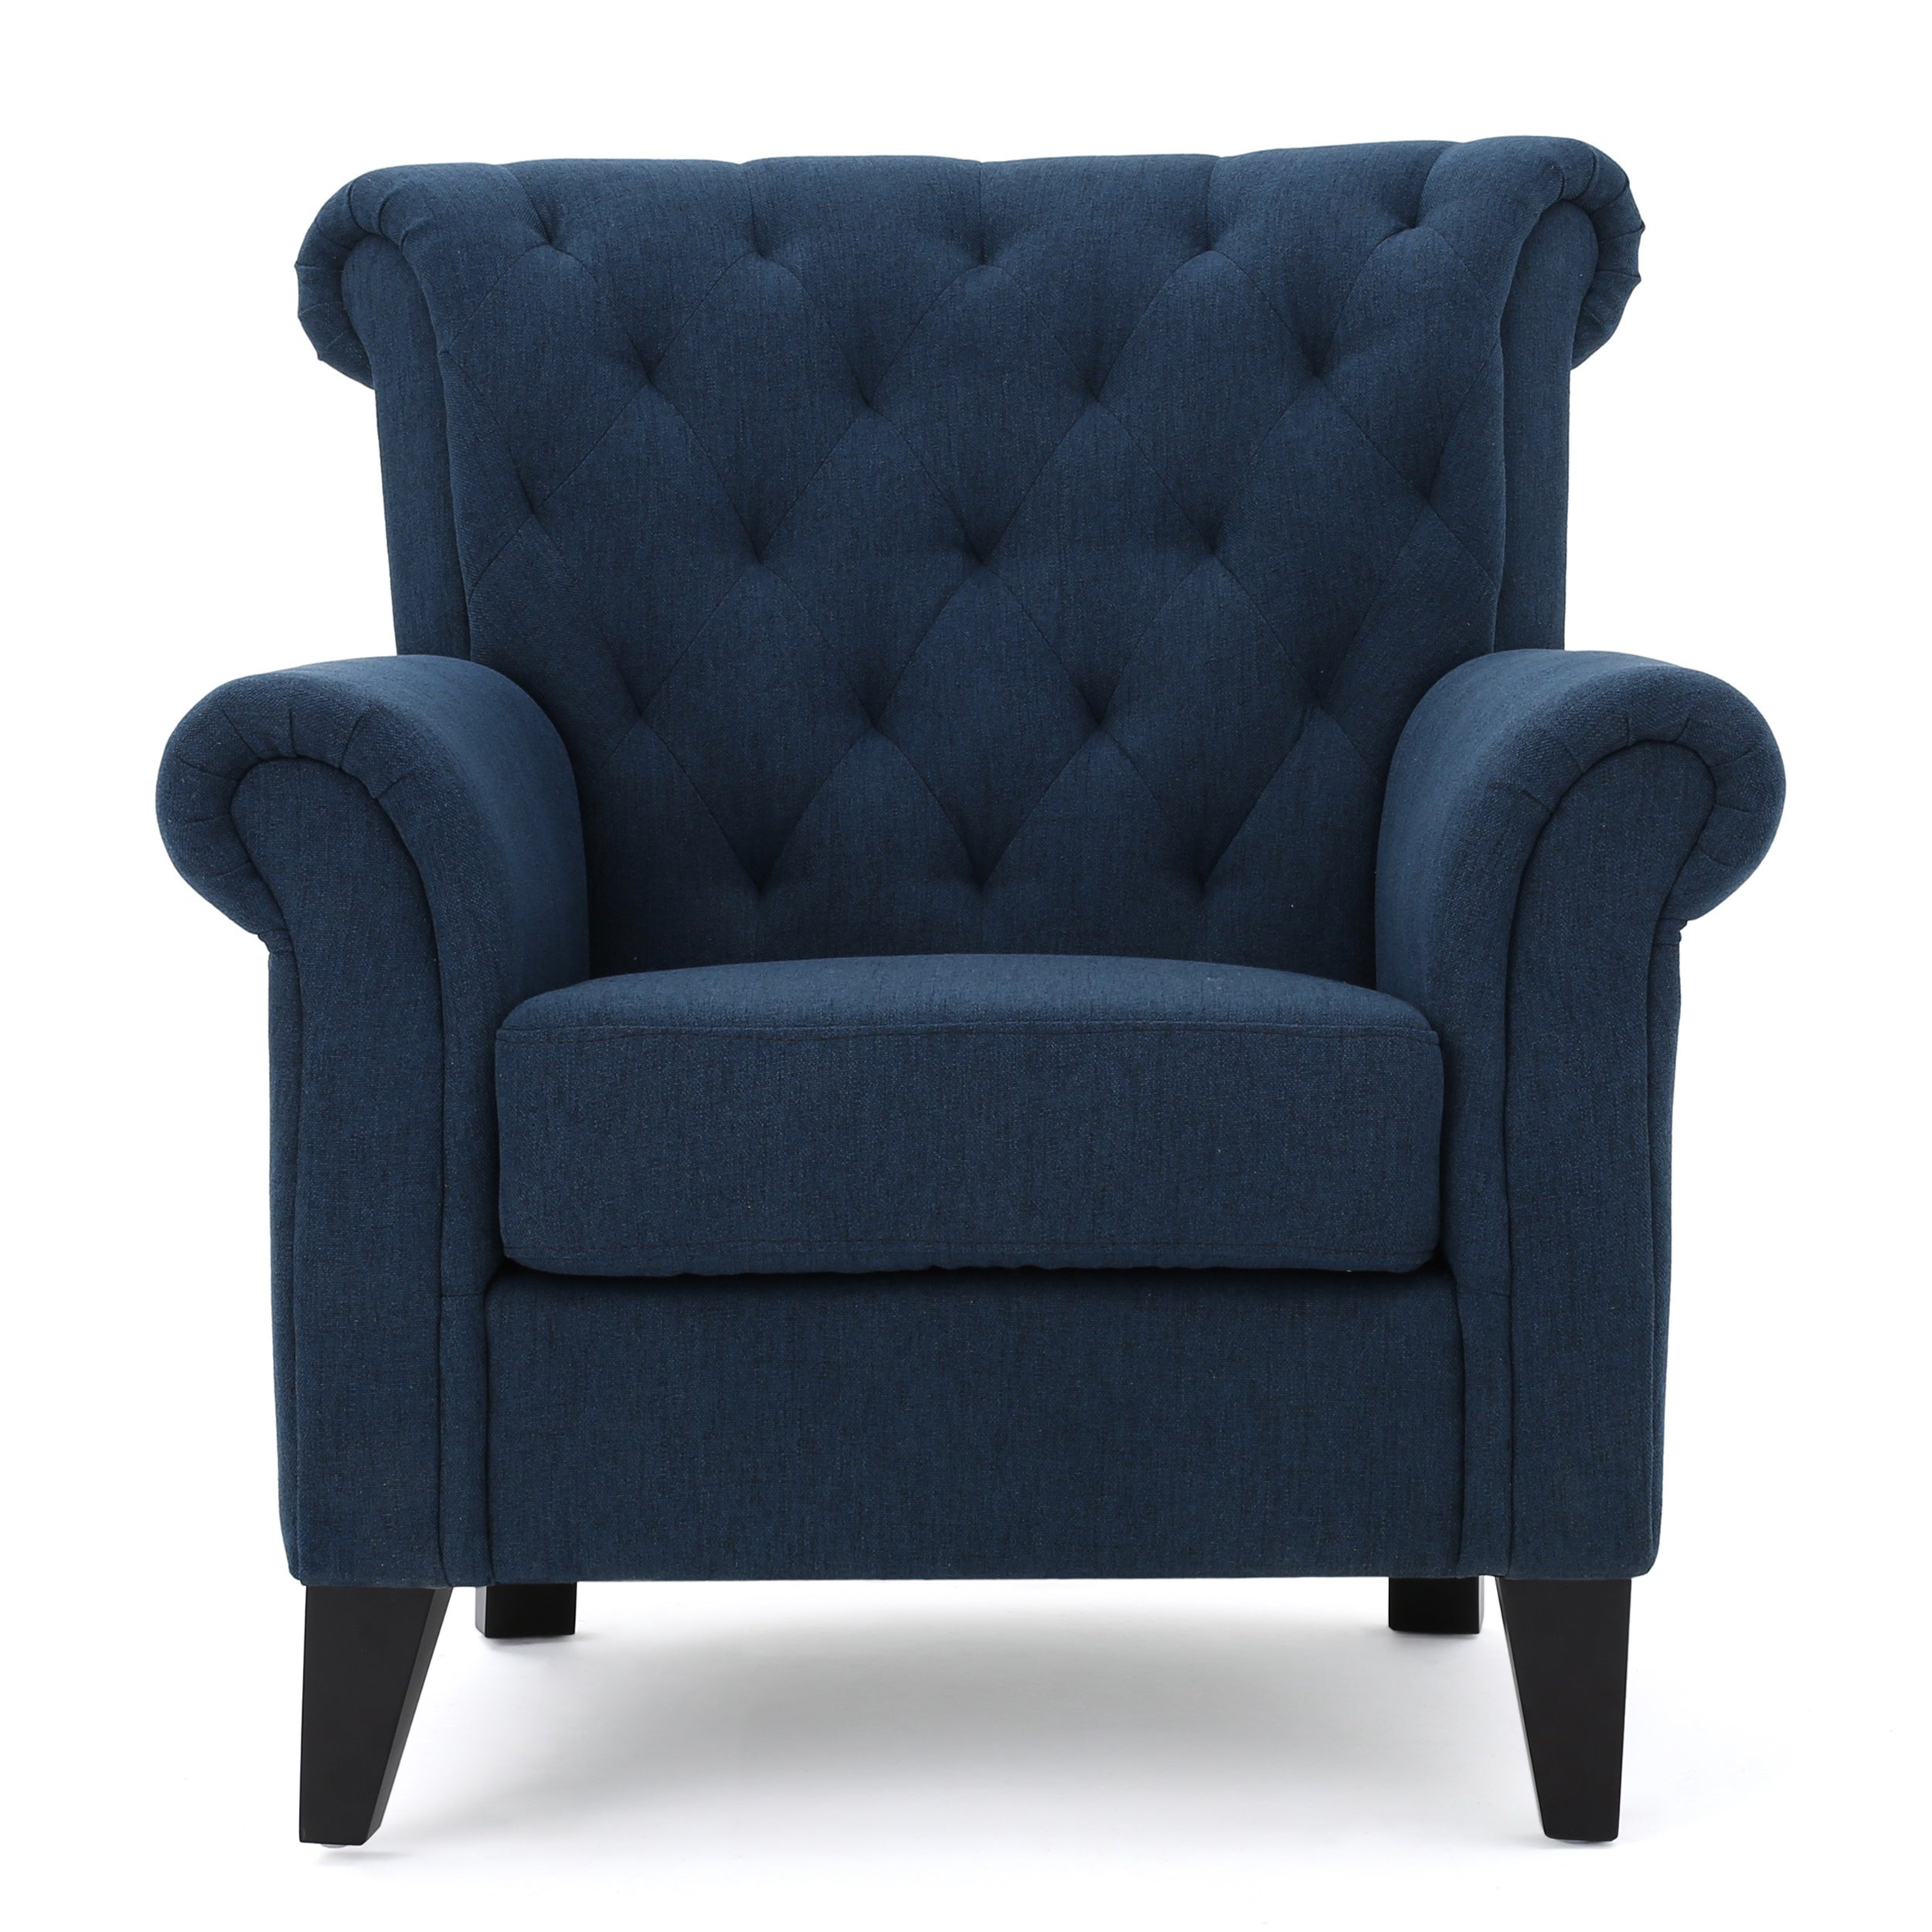 Shop Merritt High Back Tufted Fabric Club Chair By Christopher Knight Home    Free Shipping Today   Overstock.com   13683481